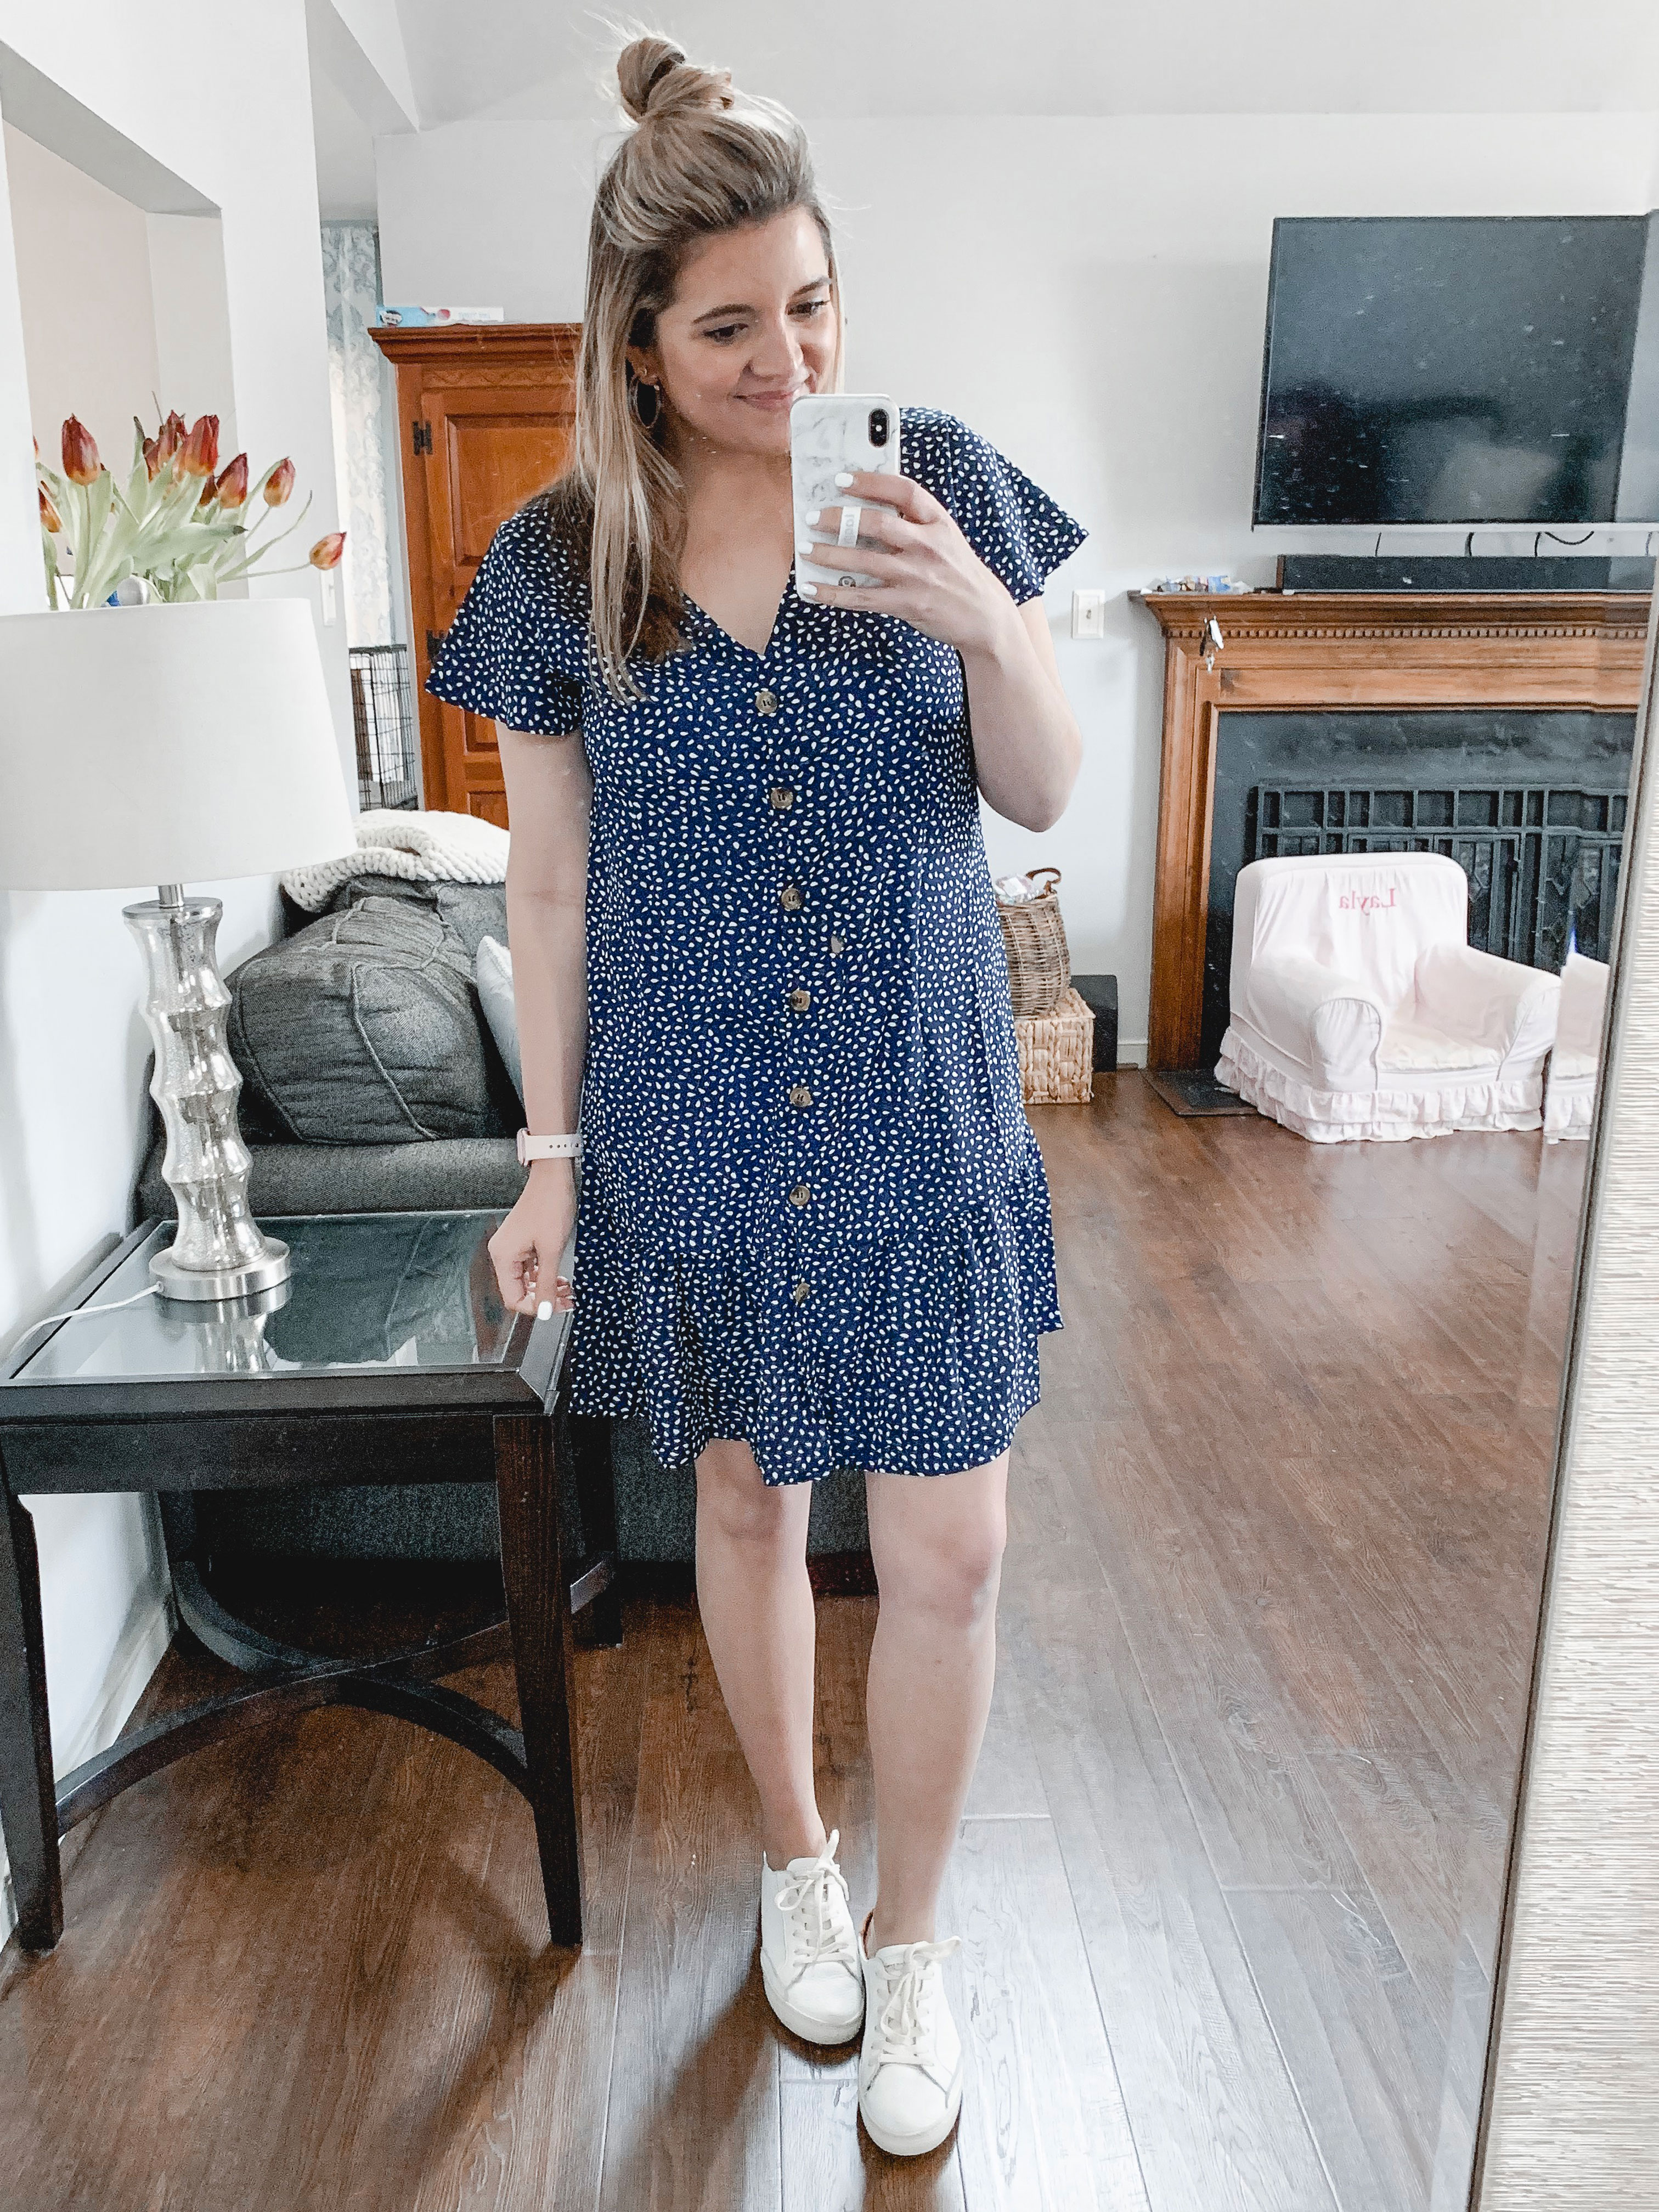 Richmond Virginia blogger, Lauren Dix, shares a try-on and review of Amazon Prime dresses and tops for spring! Everything is under $35!